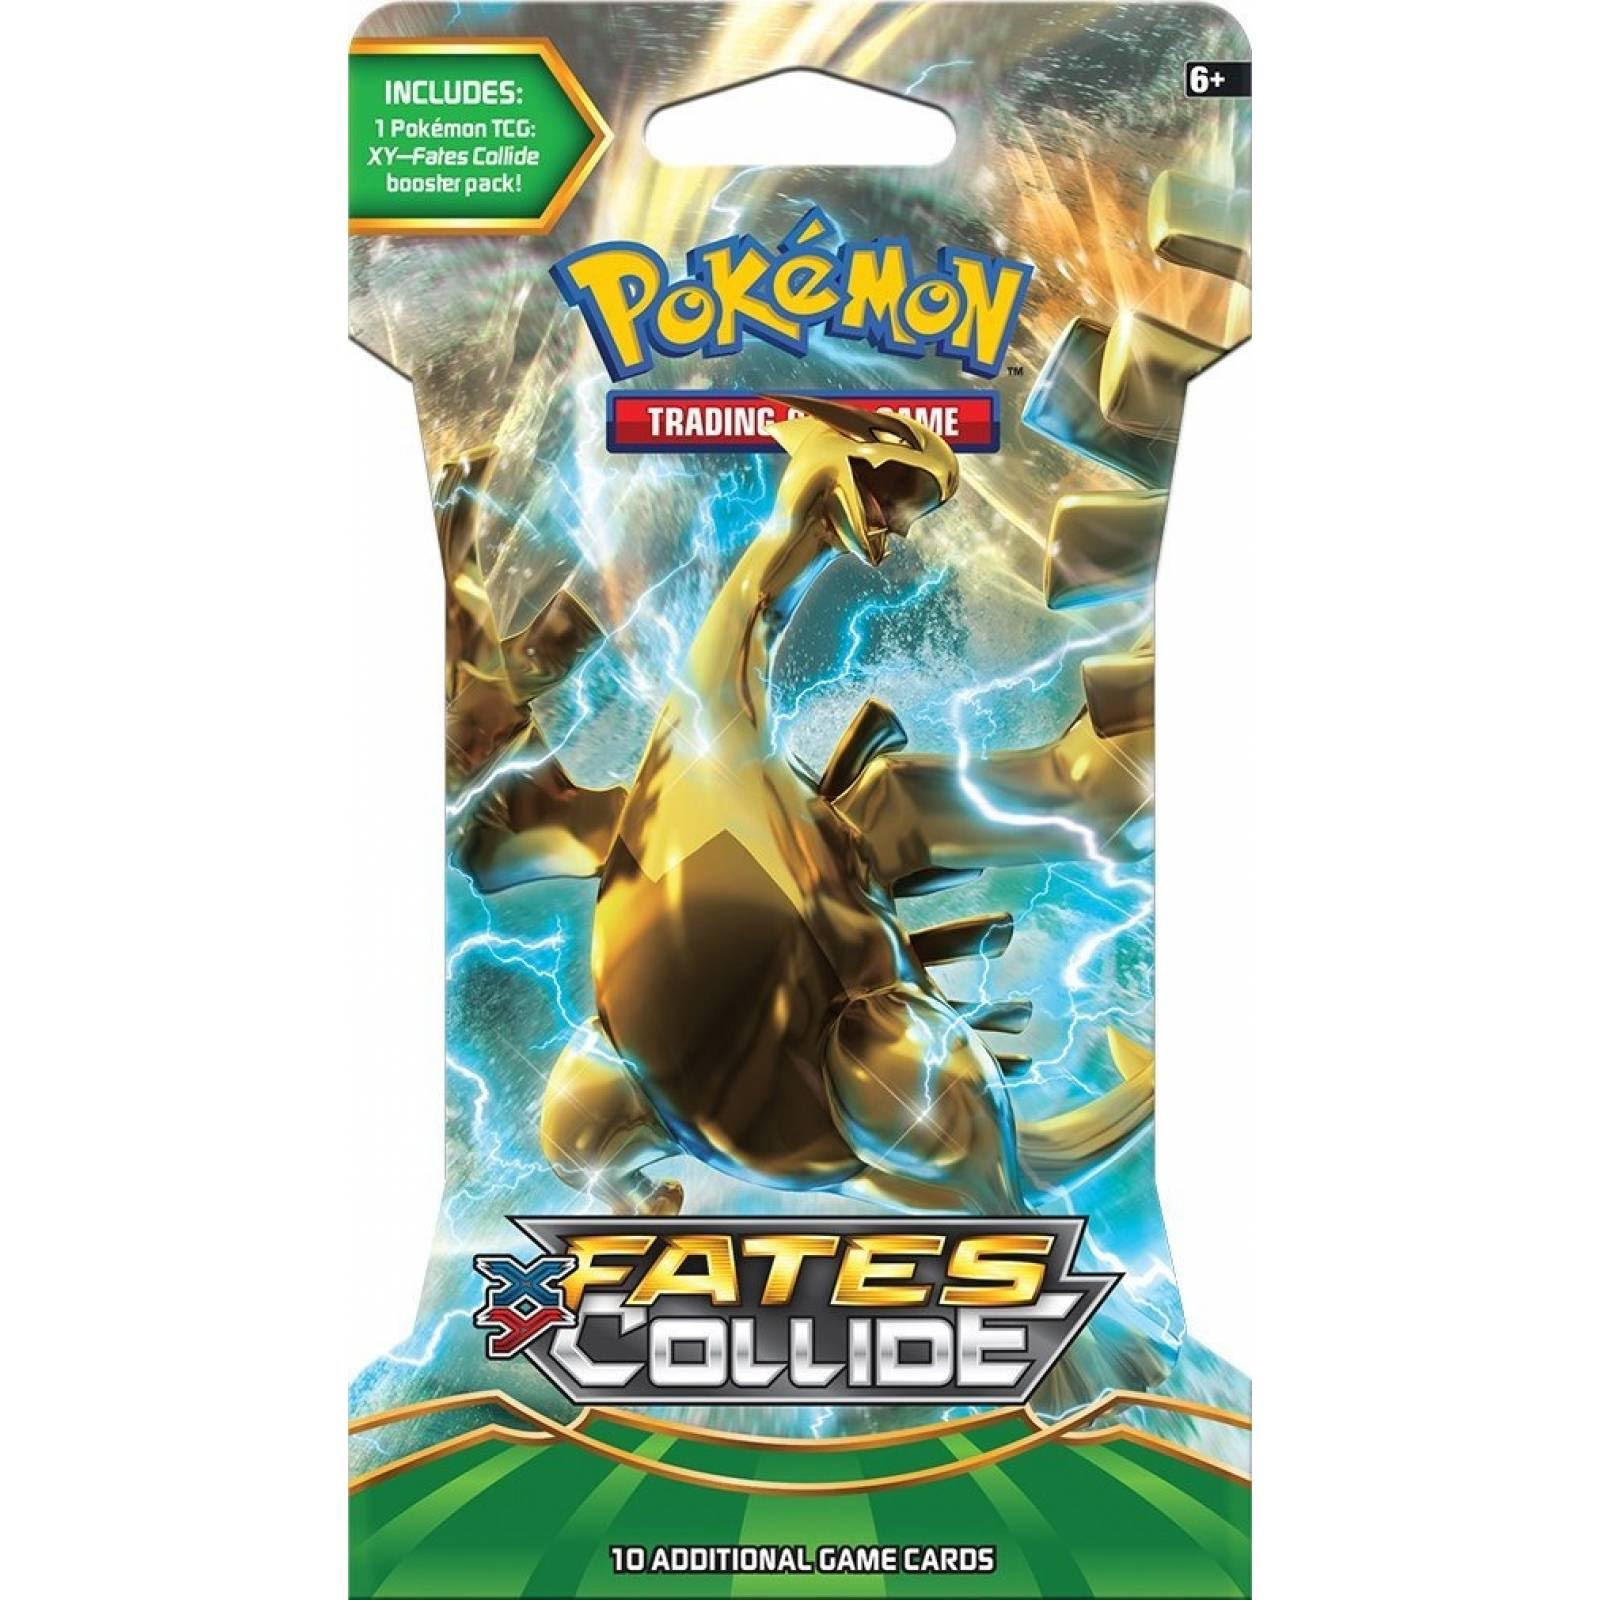 Pokemon XY Fates Collide Blister Pack